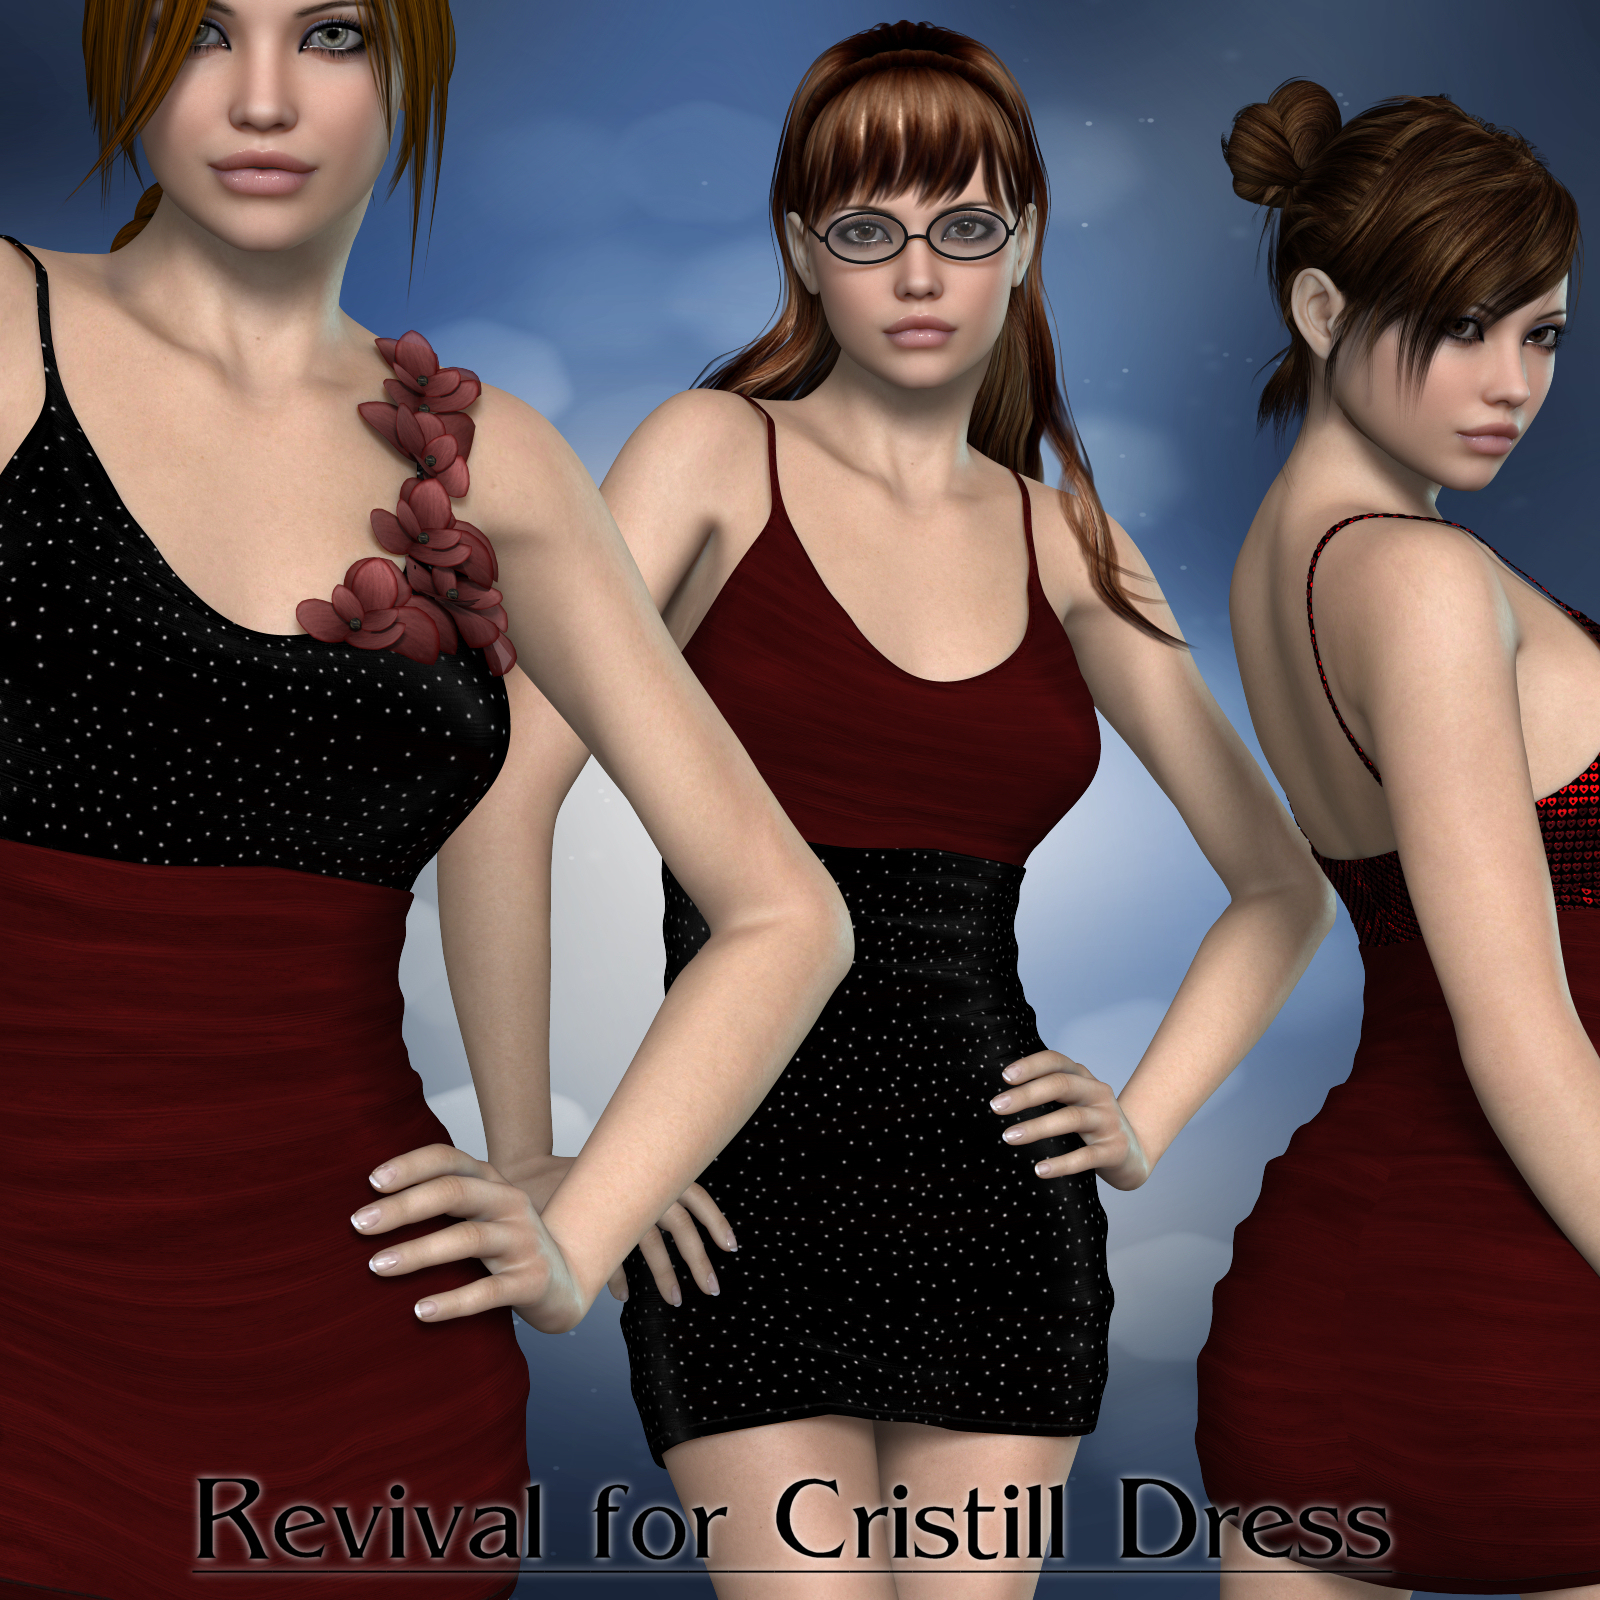 Revival for Cristill Dress